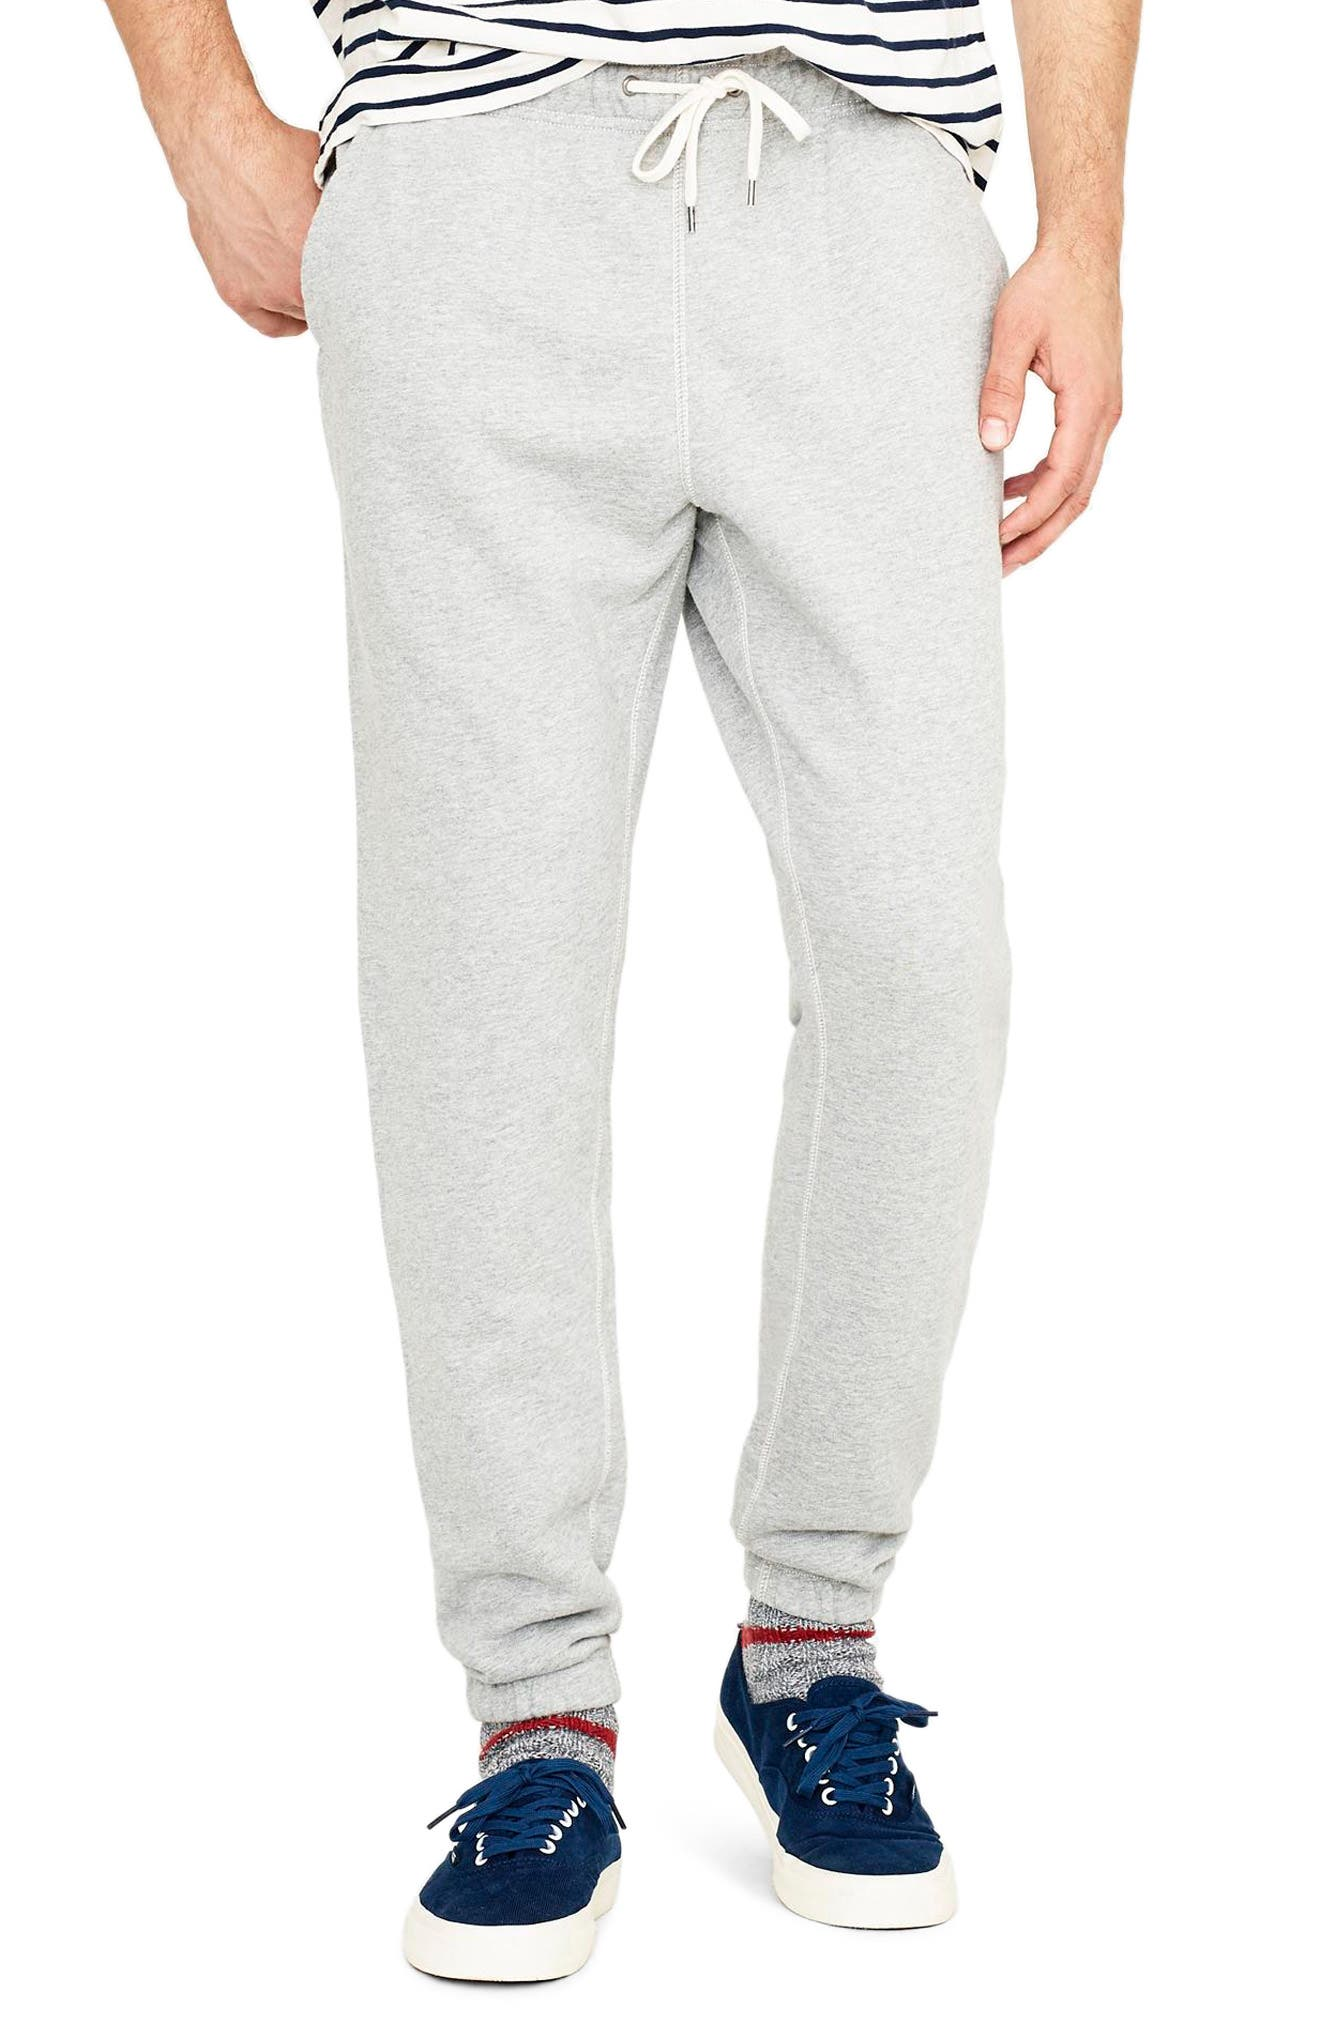 French Terry Sweatpants,                             Main thumbnail 1, color,                             HEATHER GREY